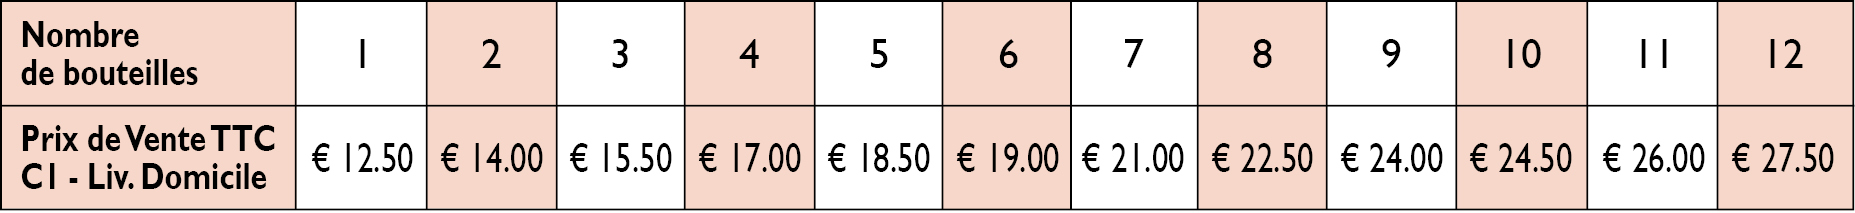 Home delivery rates in Belgium, Germany, Luxembourg and the Netherlands from 1 to 12 bottles